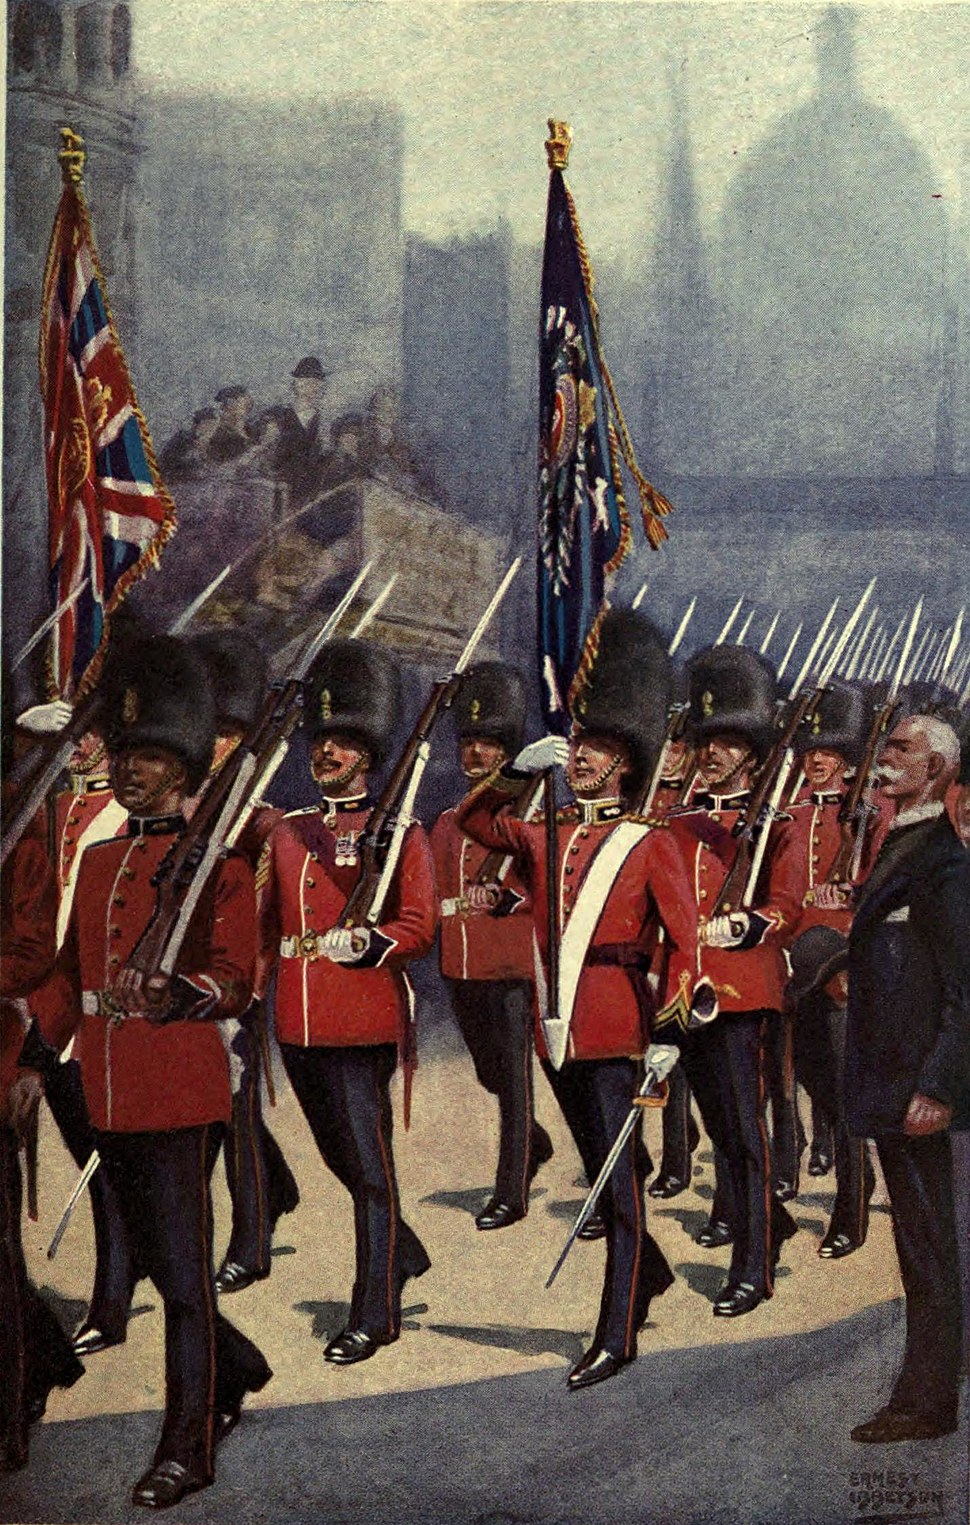 Royal Fusiliers in London